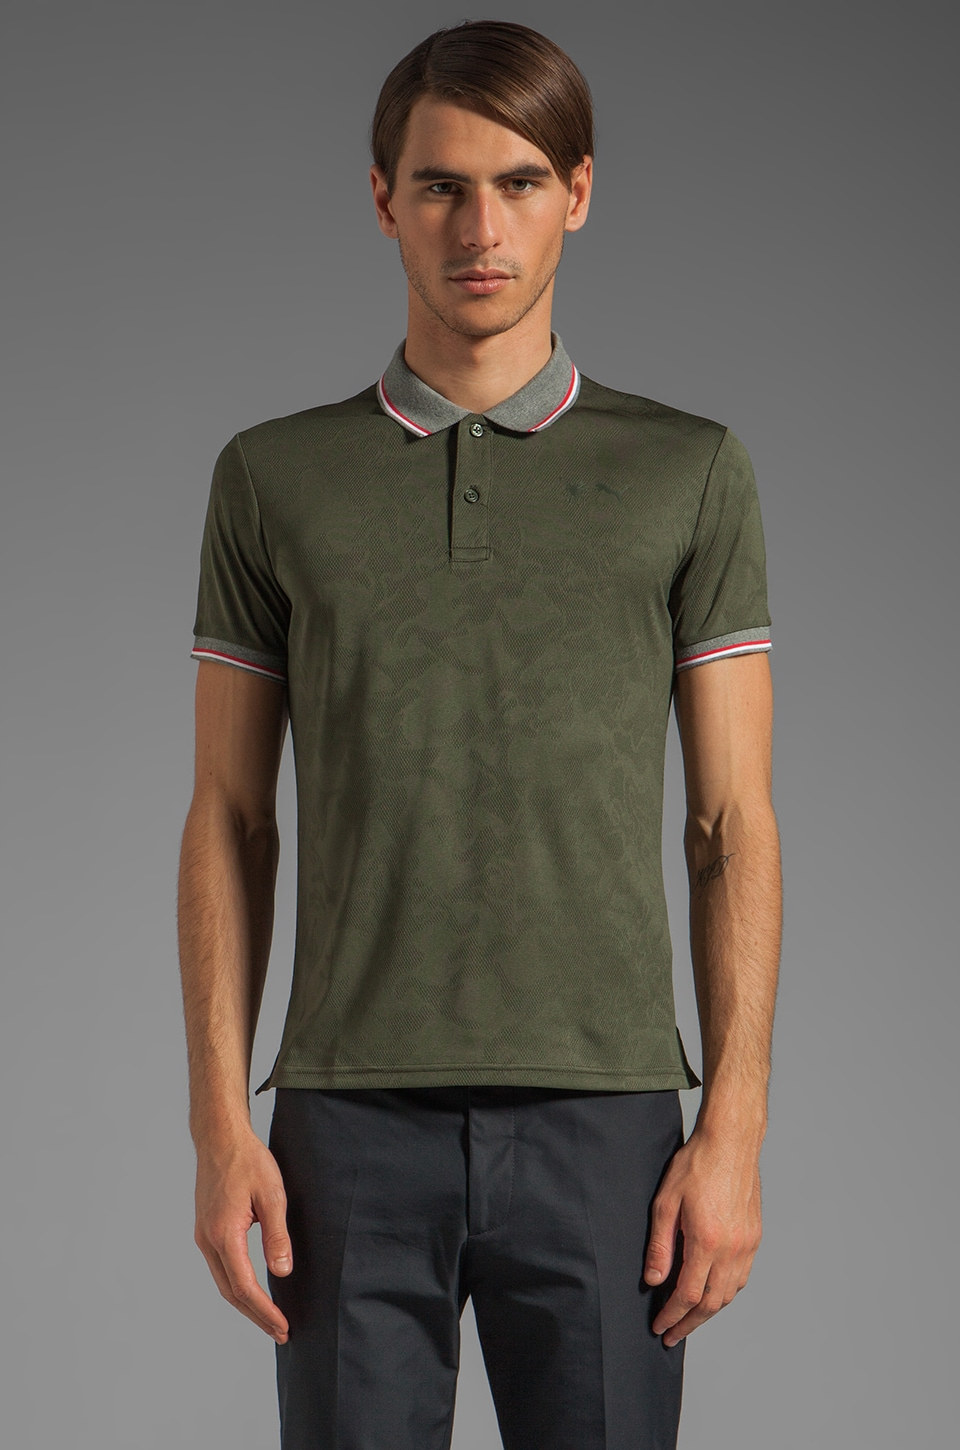 Puma by Mihara SS Jacquard Polo in Forest Night